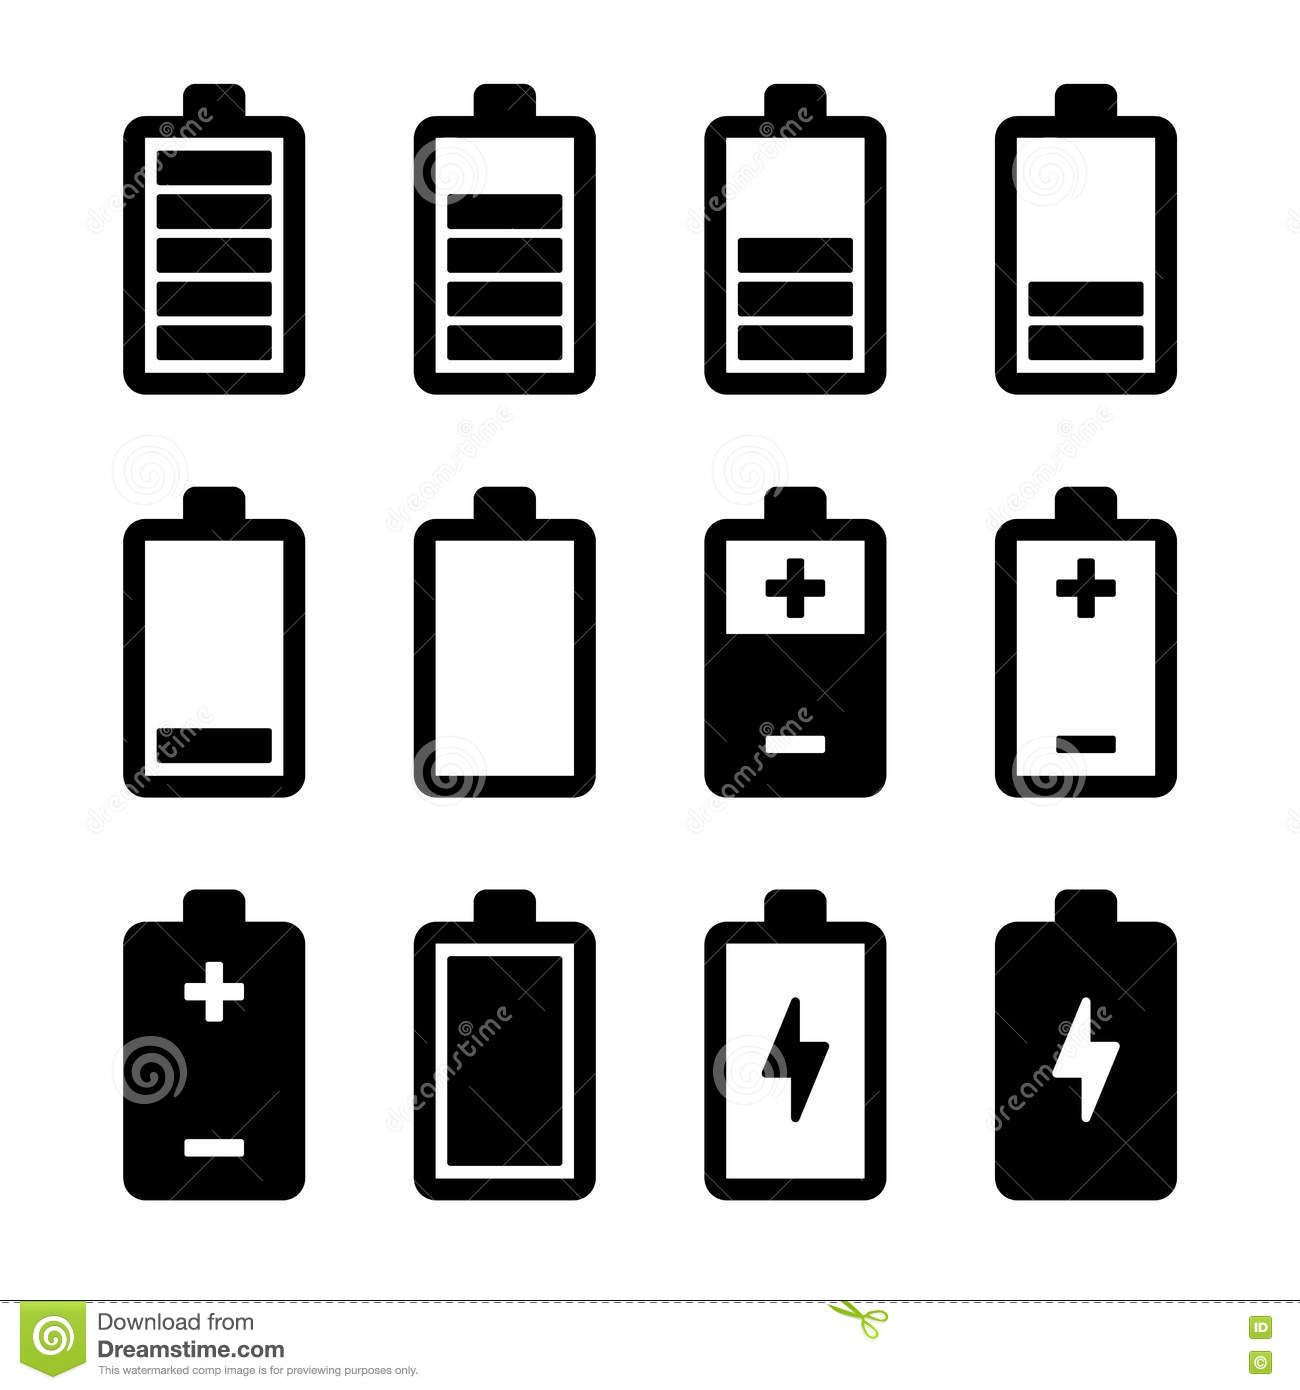 batteries icons - photo #44